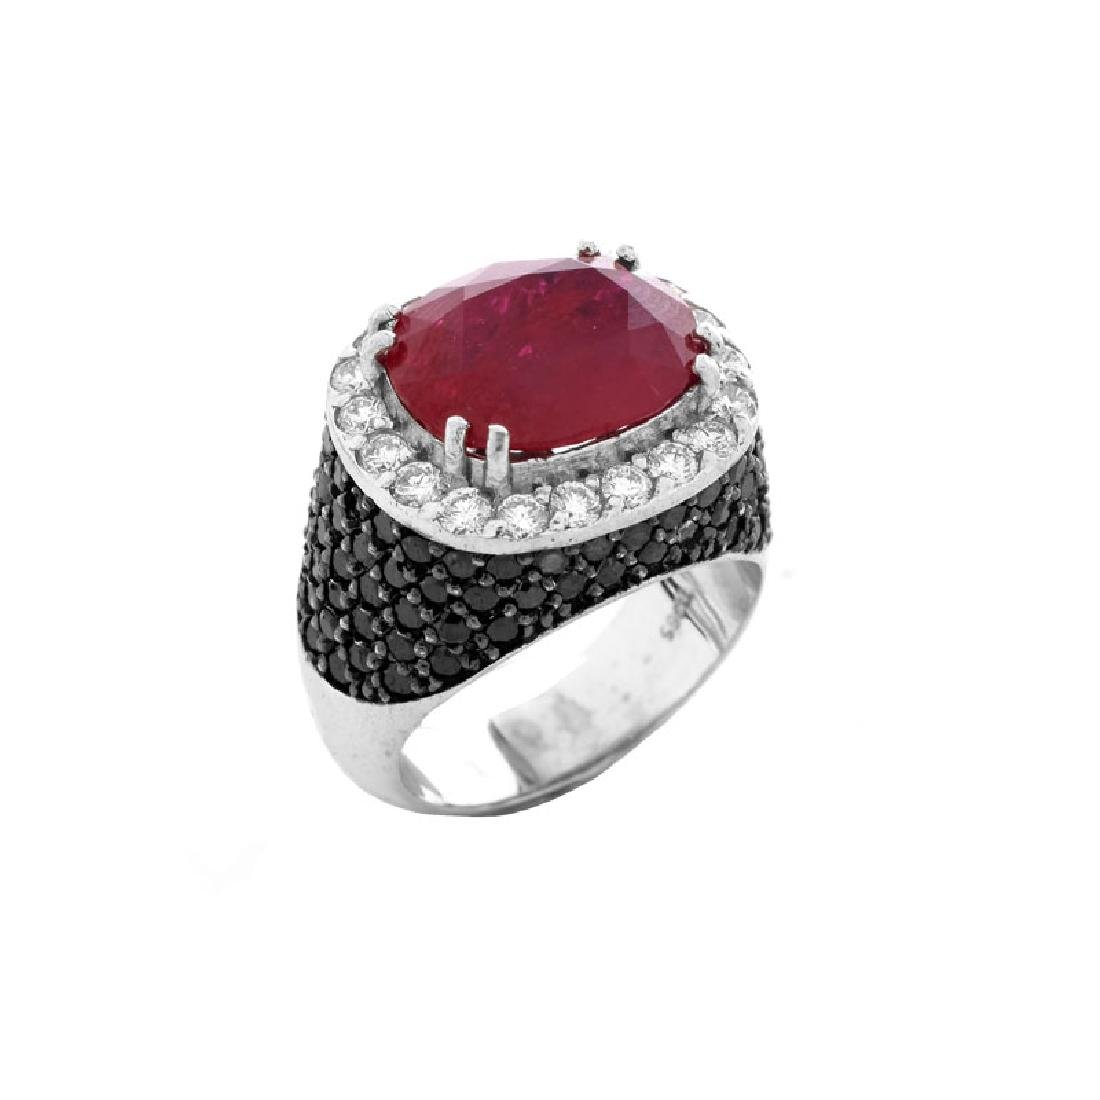 Approx. 5.11 Carat Oval Cut Ruby, 3.50 Carat Micro Pave